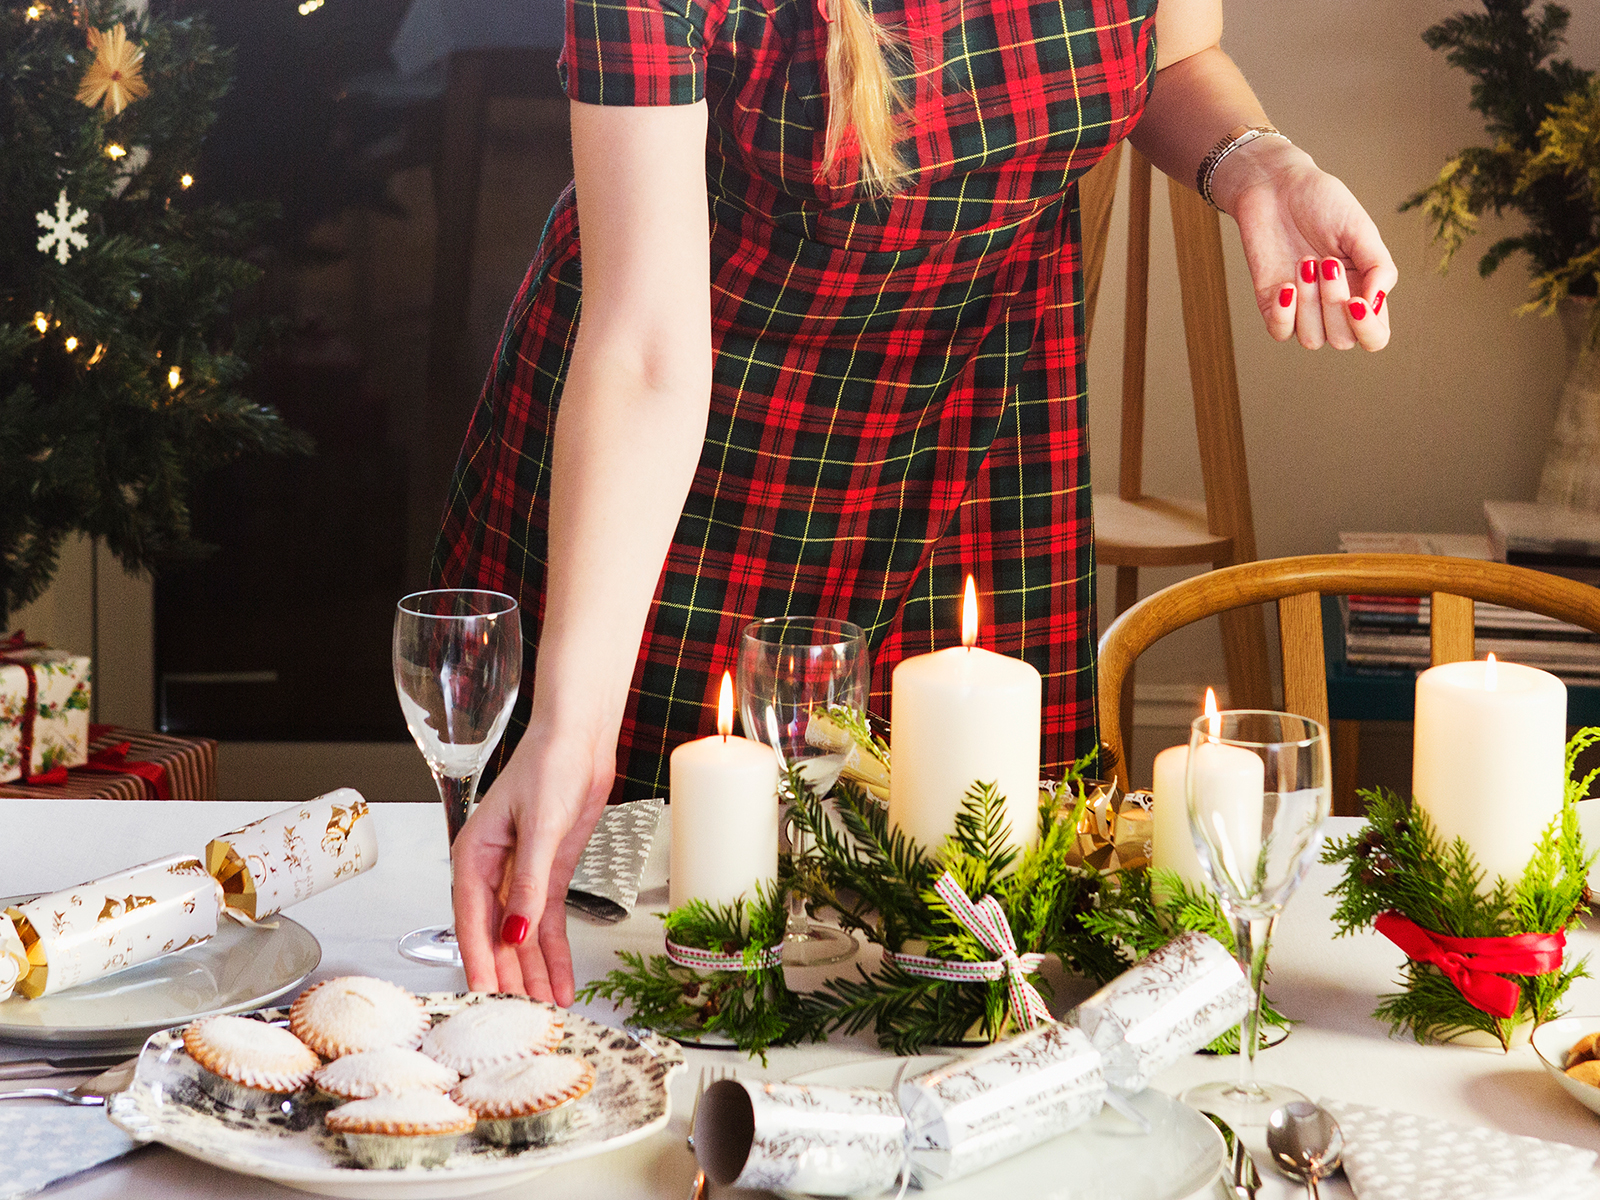 Hosting the Holidays Away from Home? Follow These 5 Tips